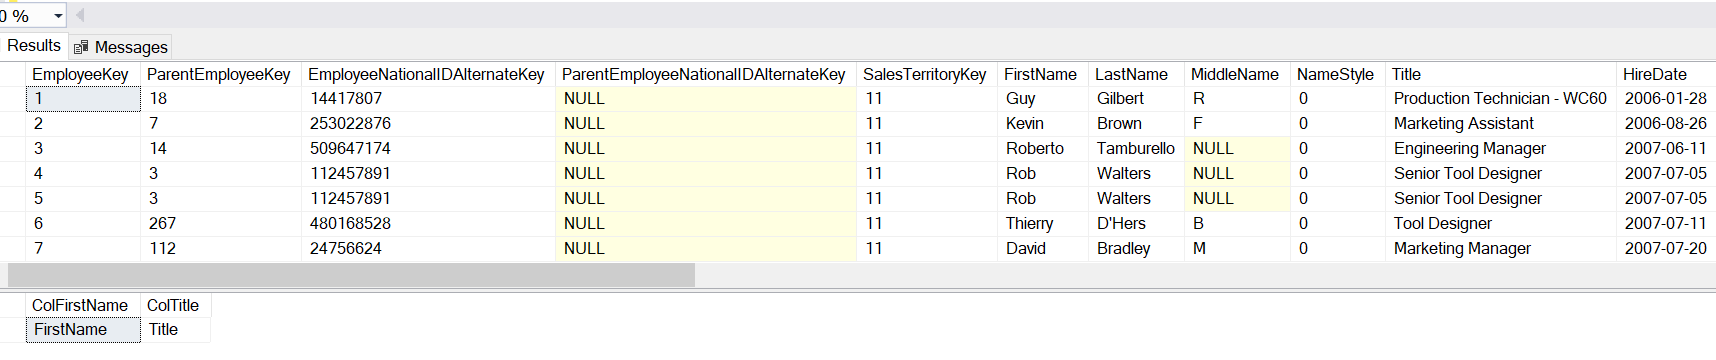 Example of metadata function COL_NAME() in SQL Server.